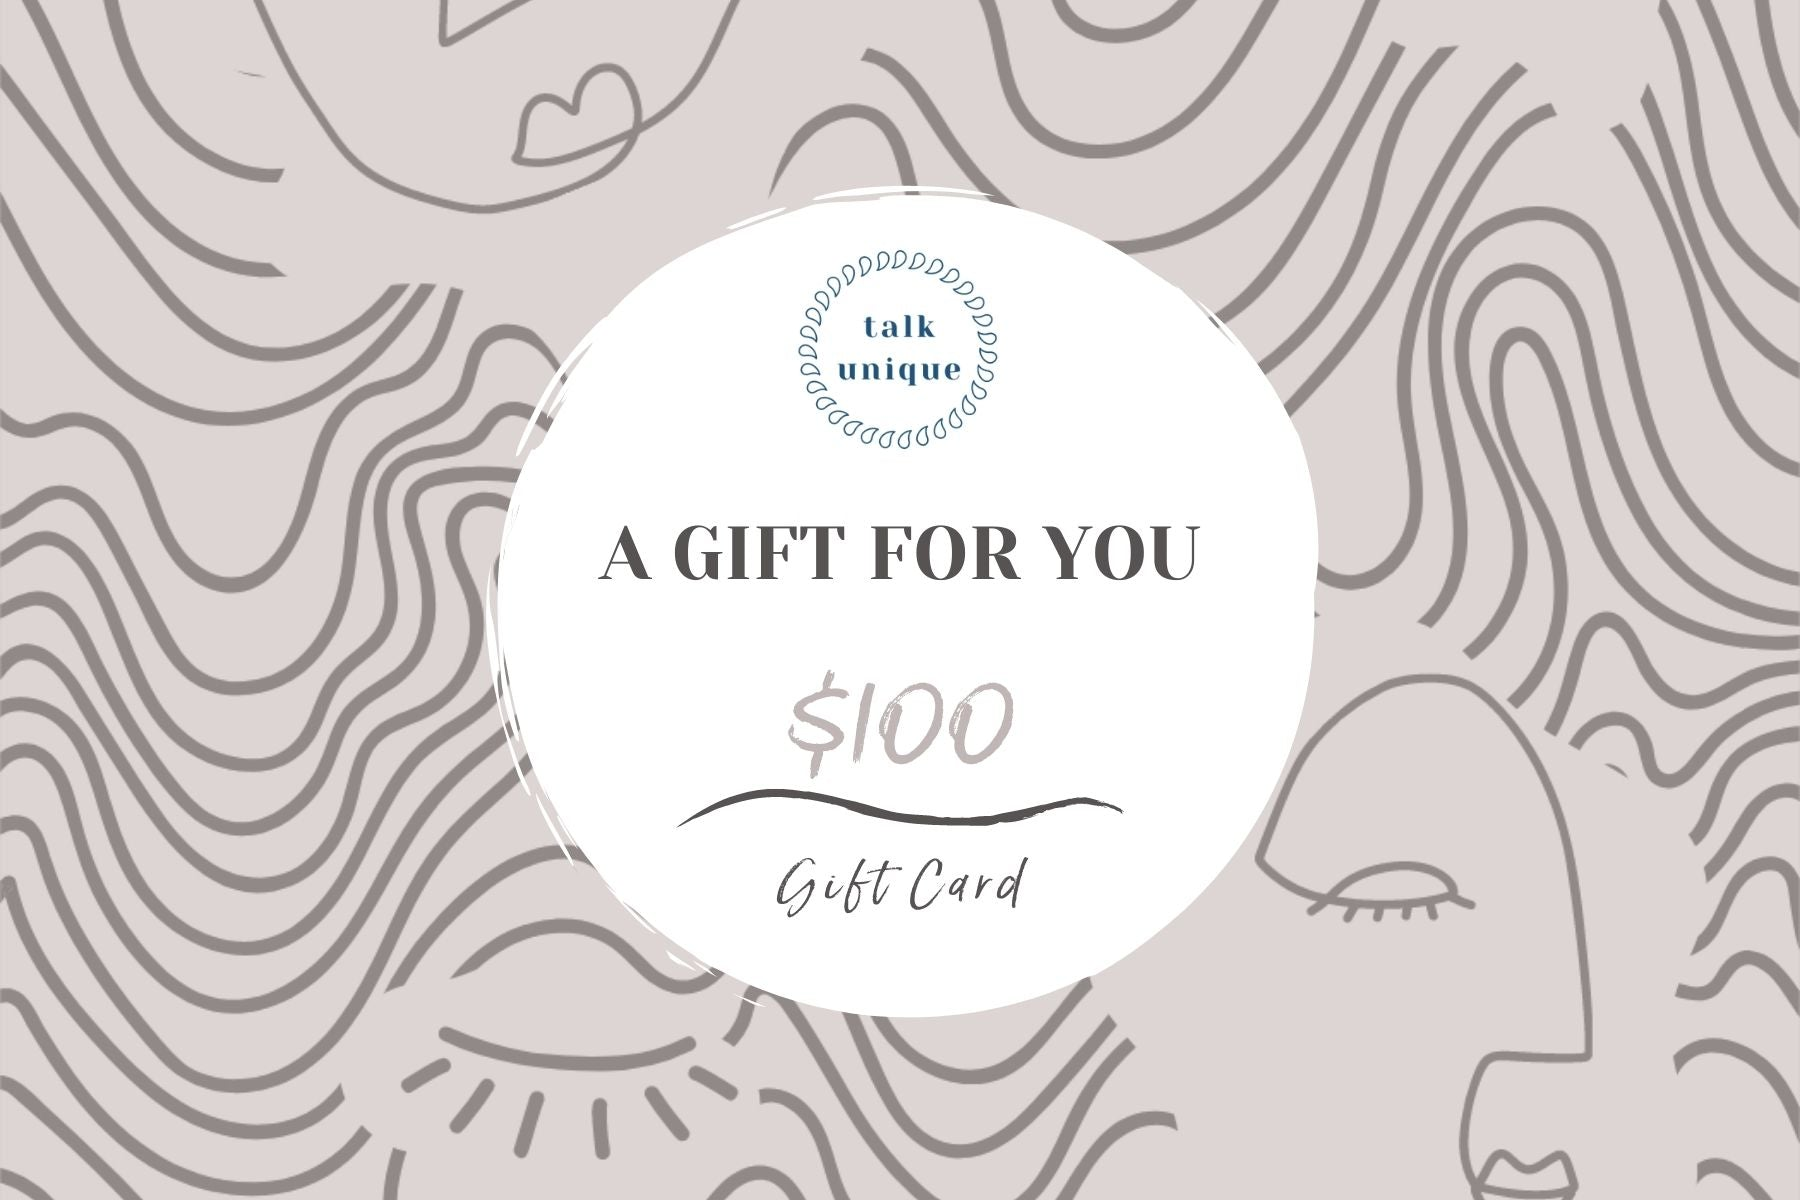 Talk Unique $100 Gift Card